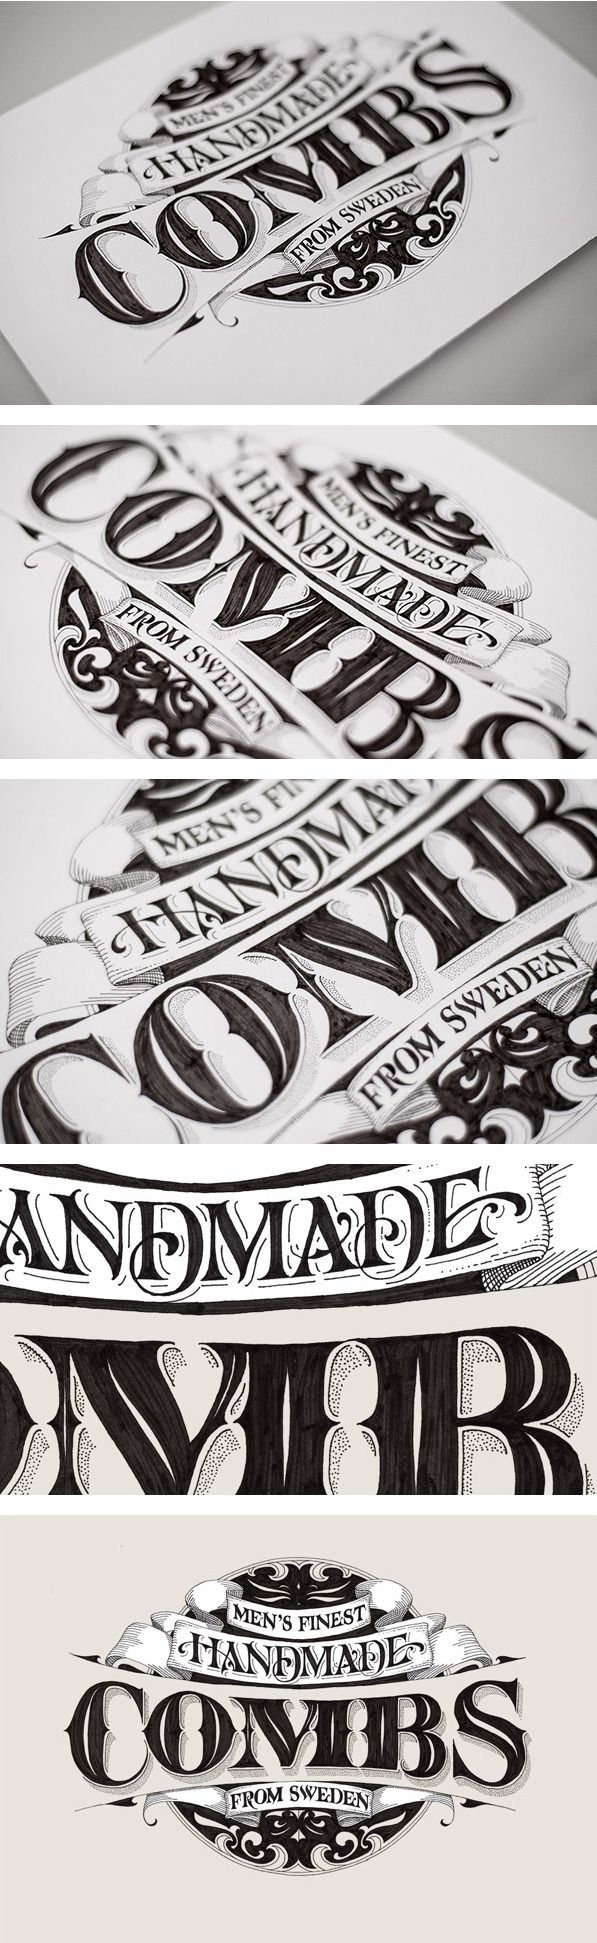 Handmade Combs by Andreas Ejerfors--Love the details in this lettering! The stippling and the lines added for shadows.